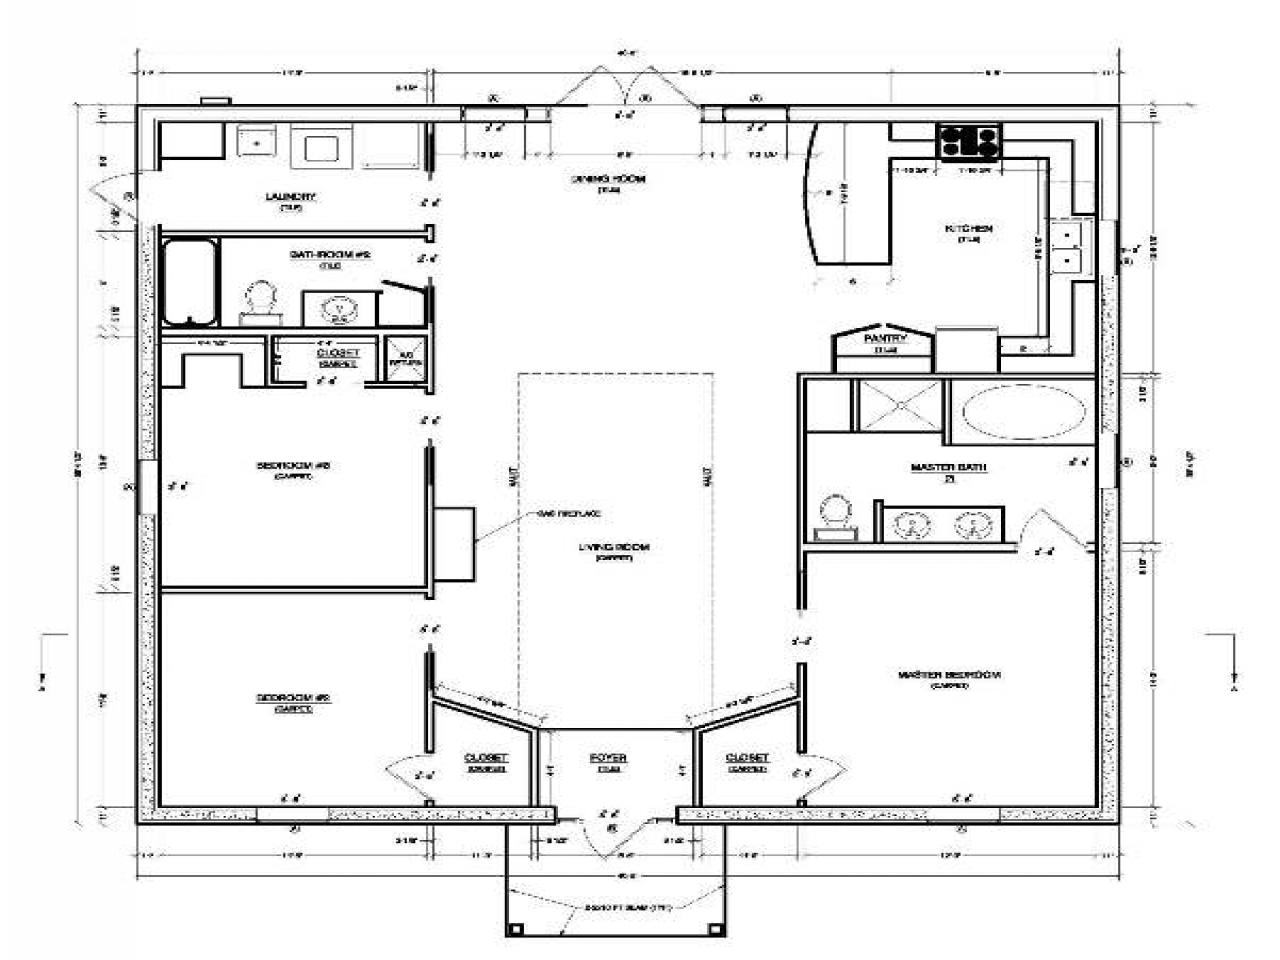 Best Small House Plans Unique Small House Plans Hpuse